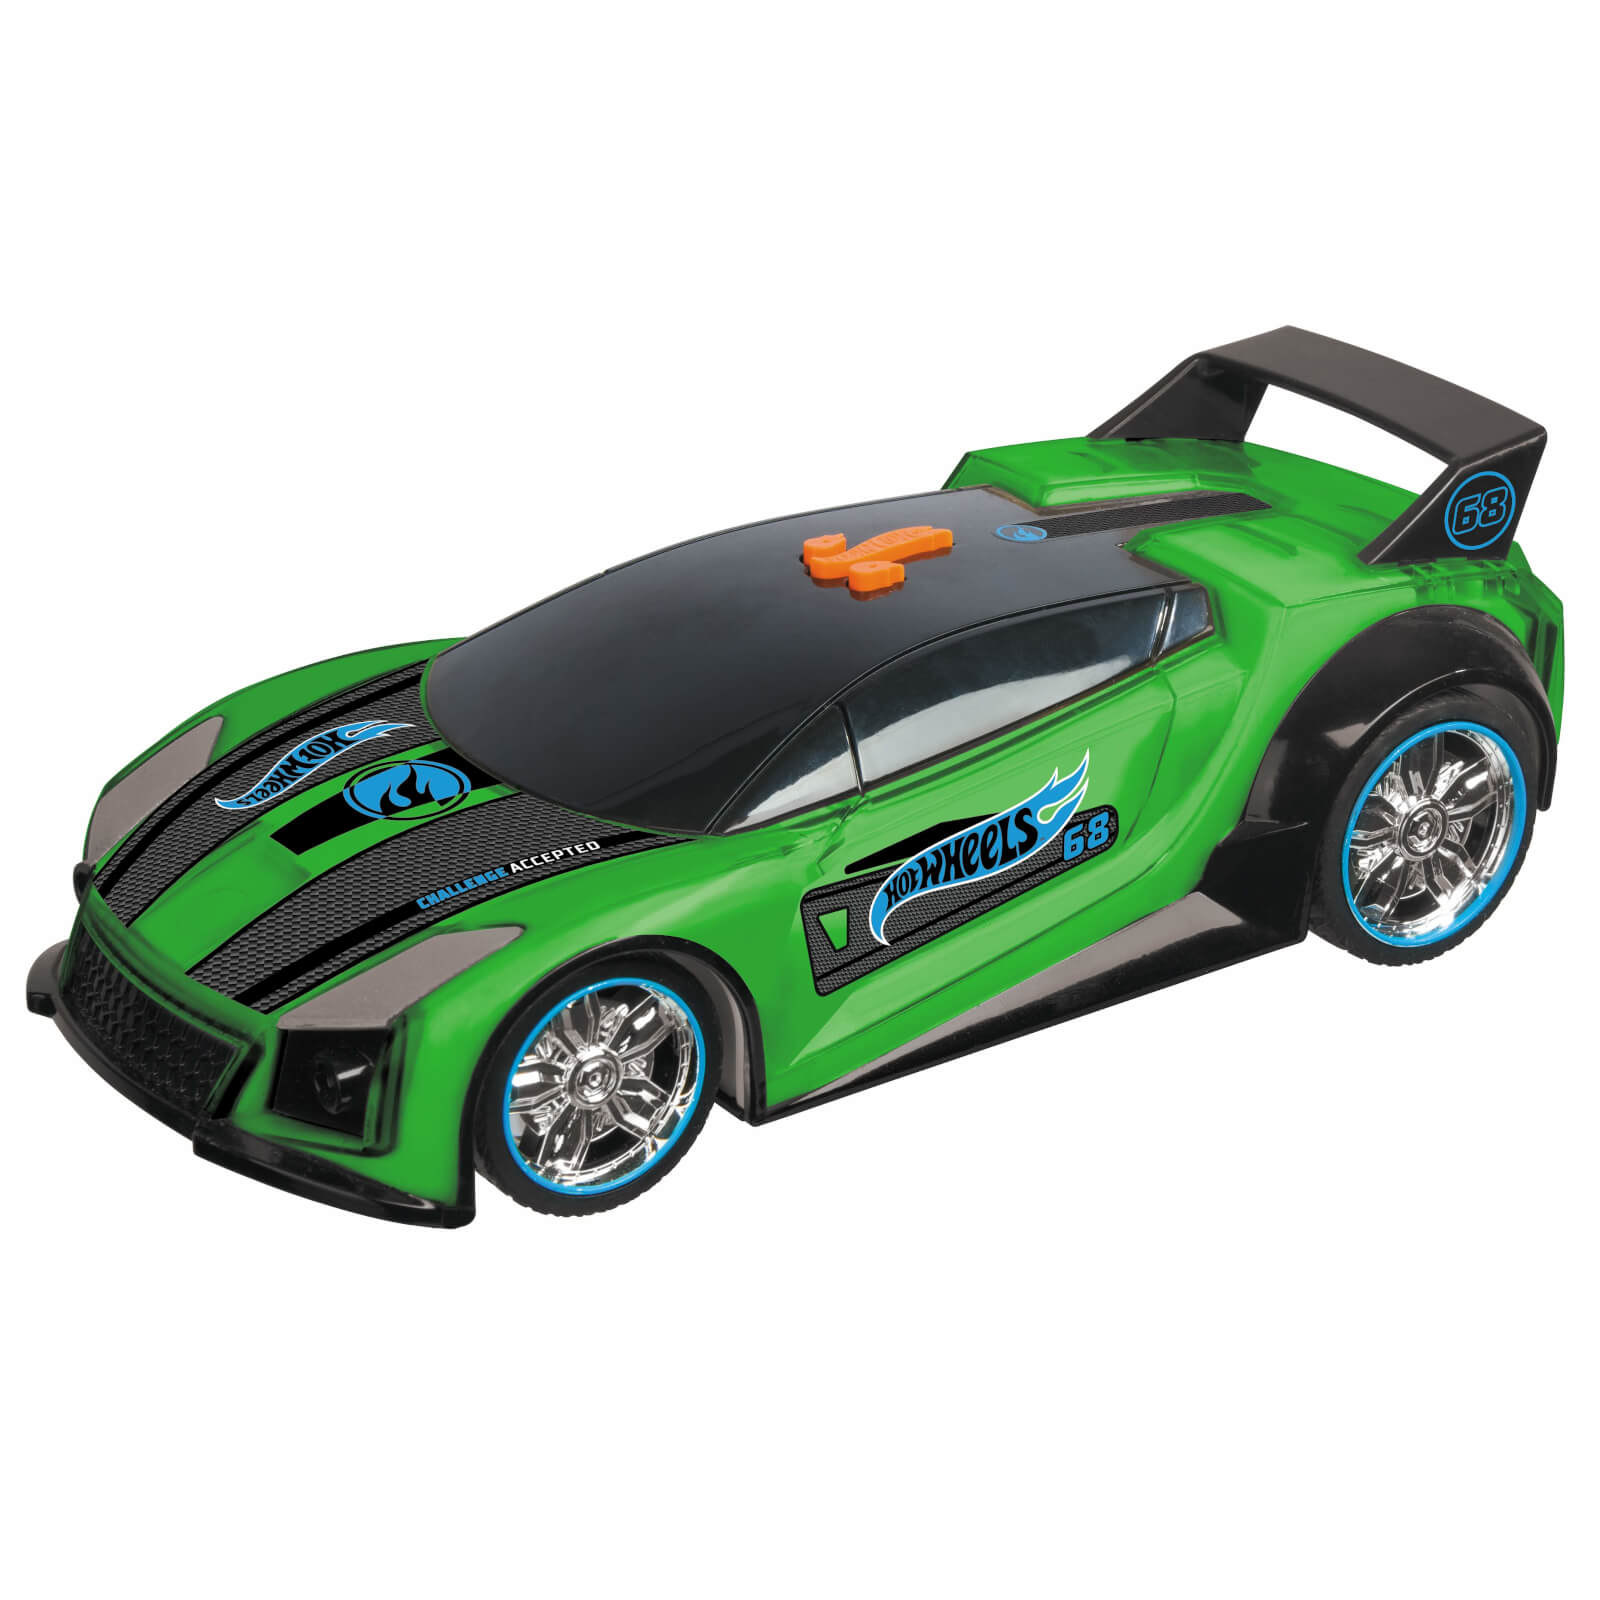 Hot Wheels 9′ Quick and Sik Lights and Sounds